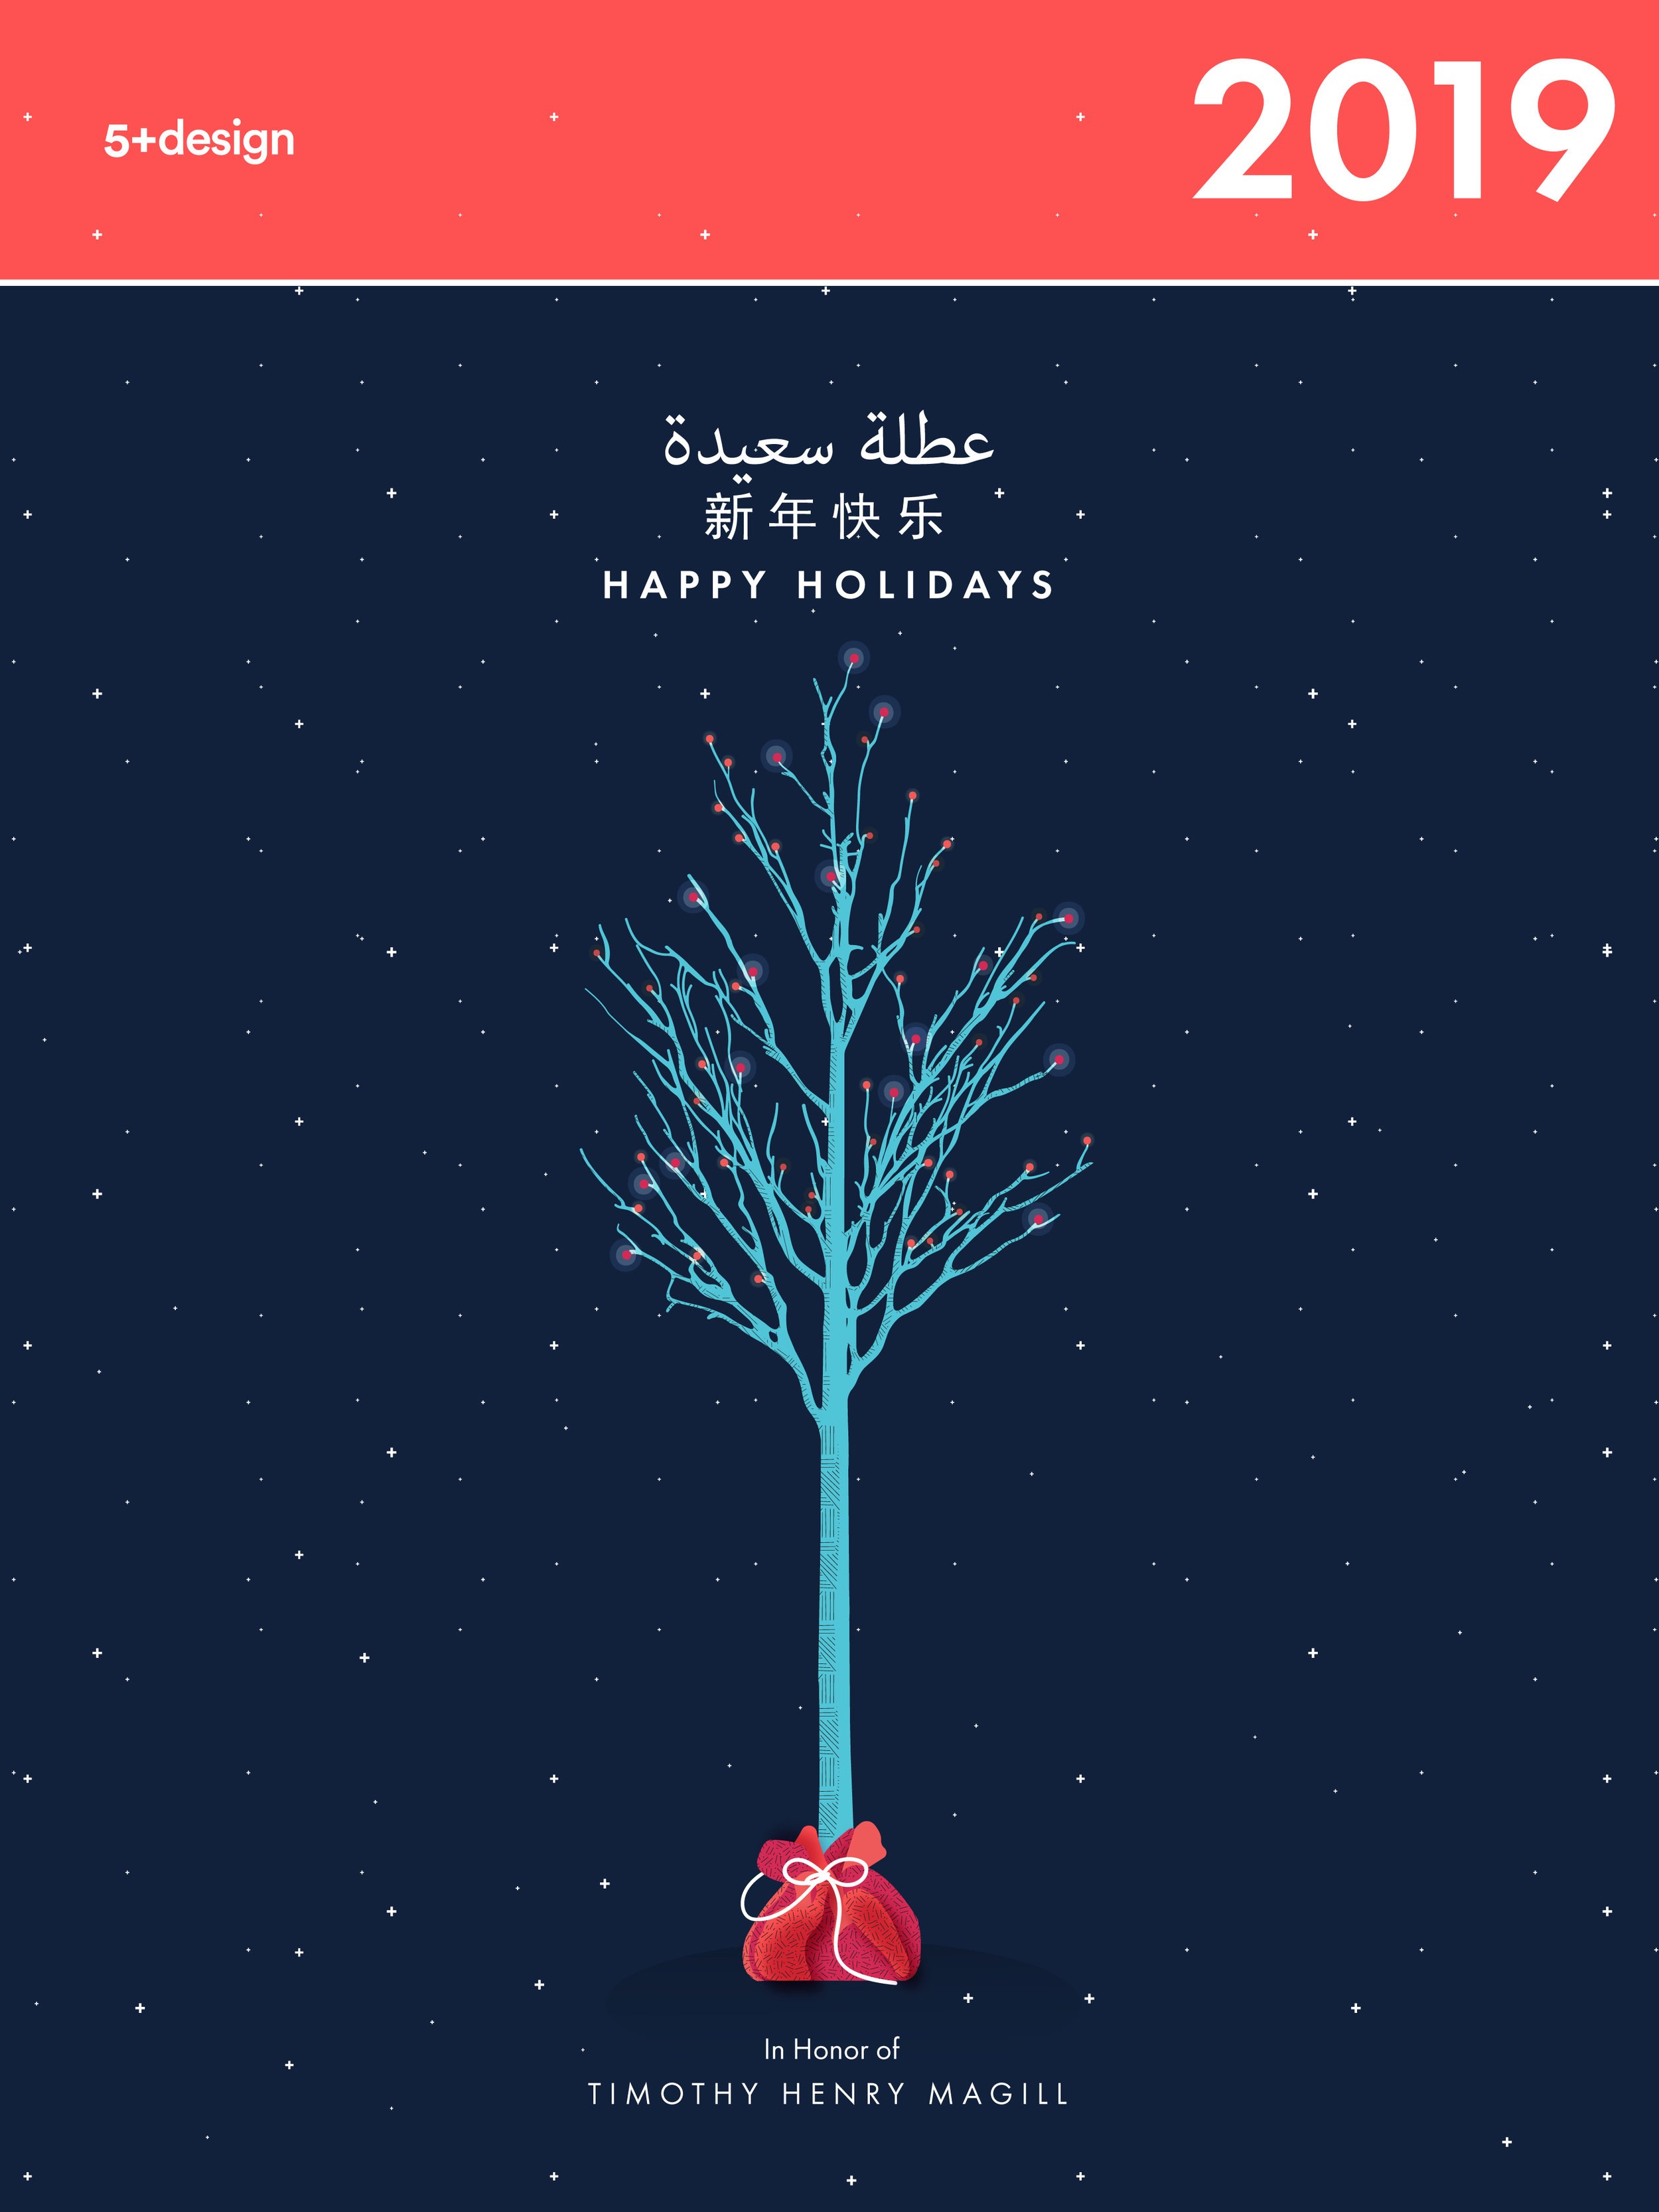 Happy Holidays from 5+design